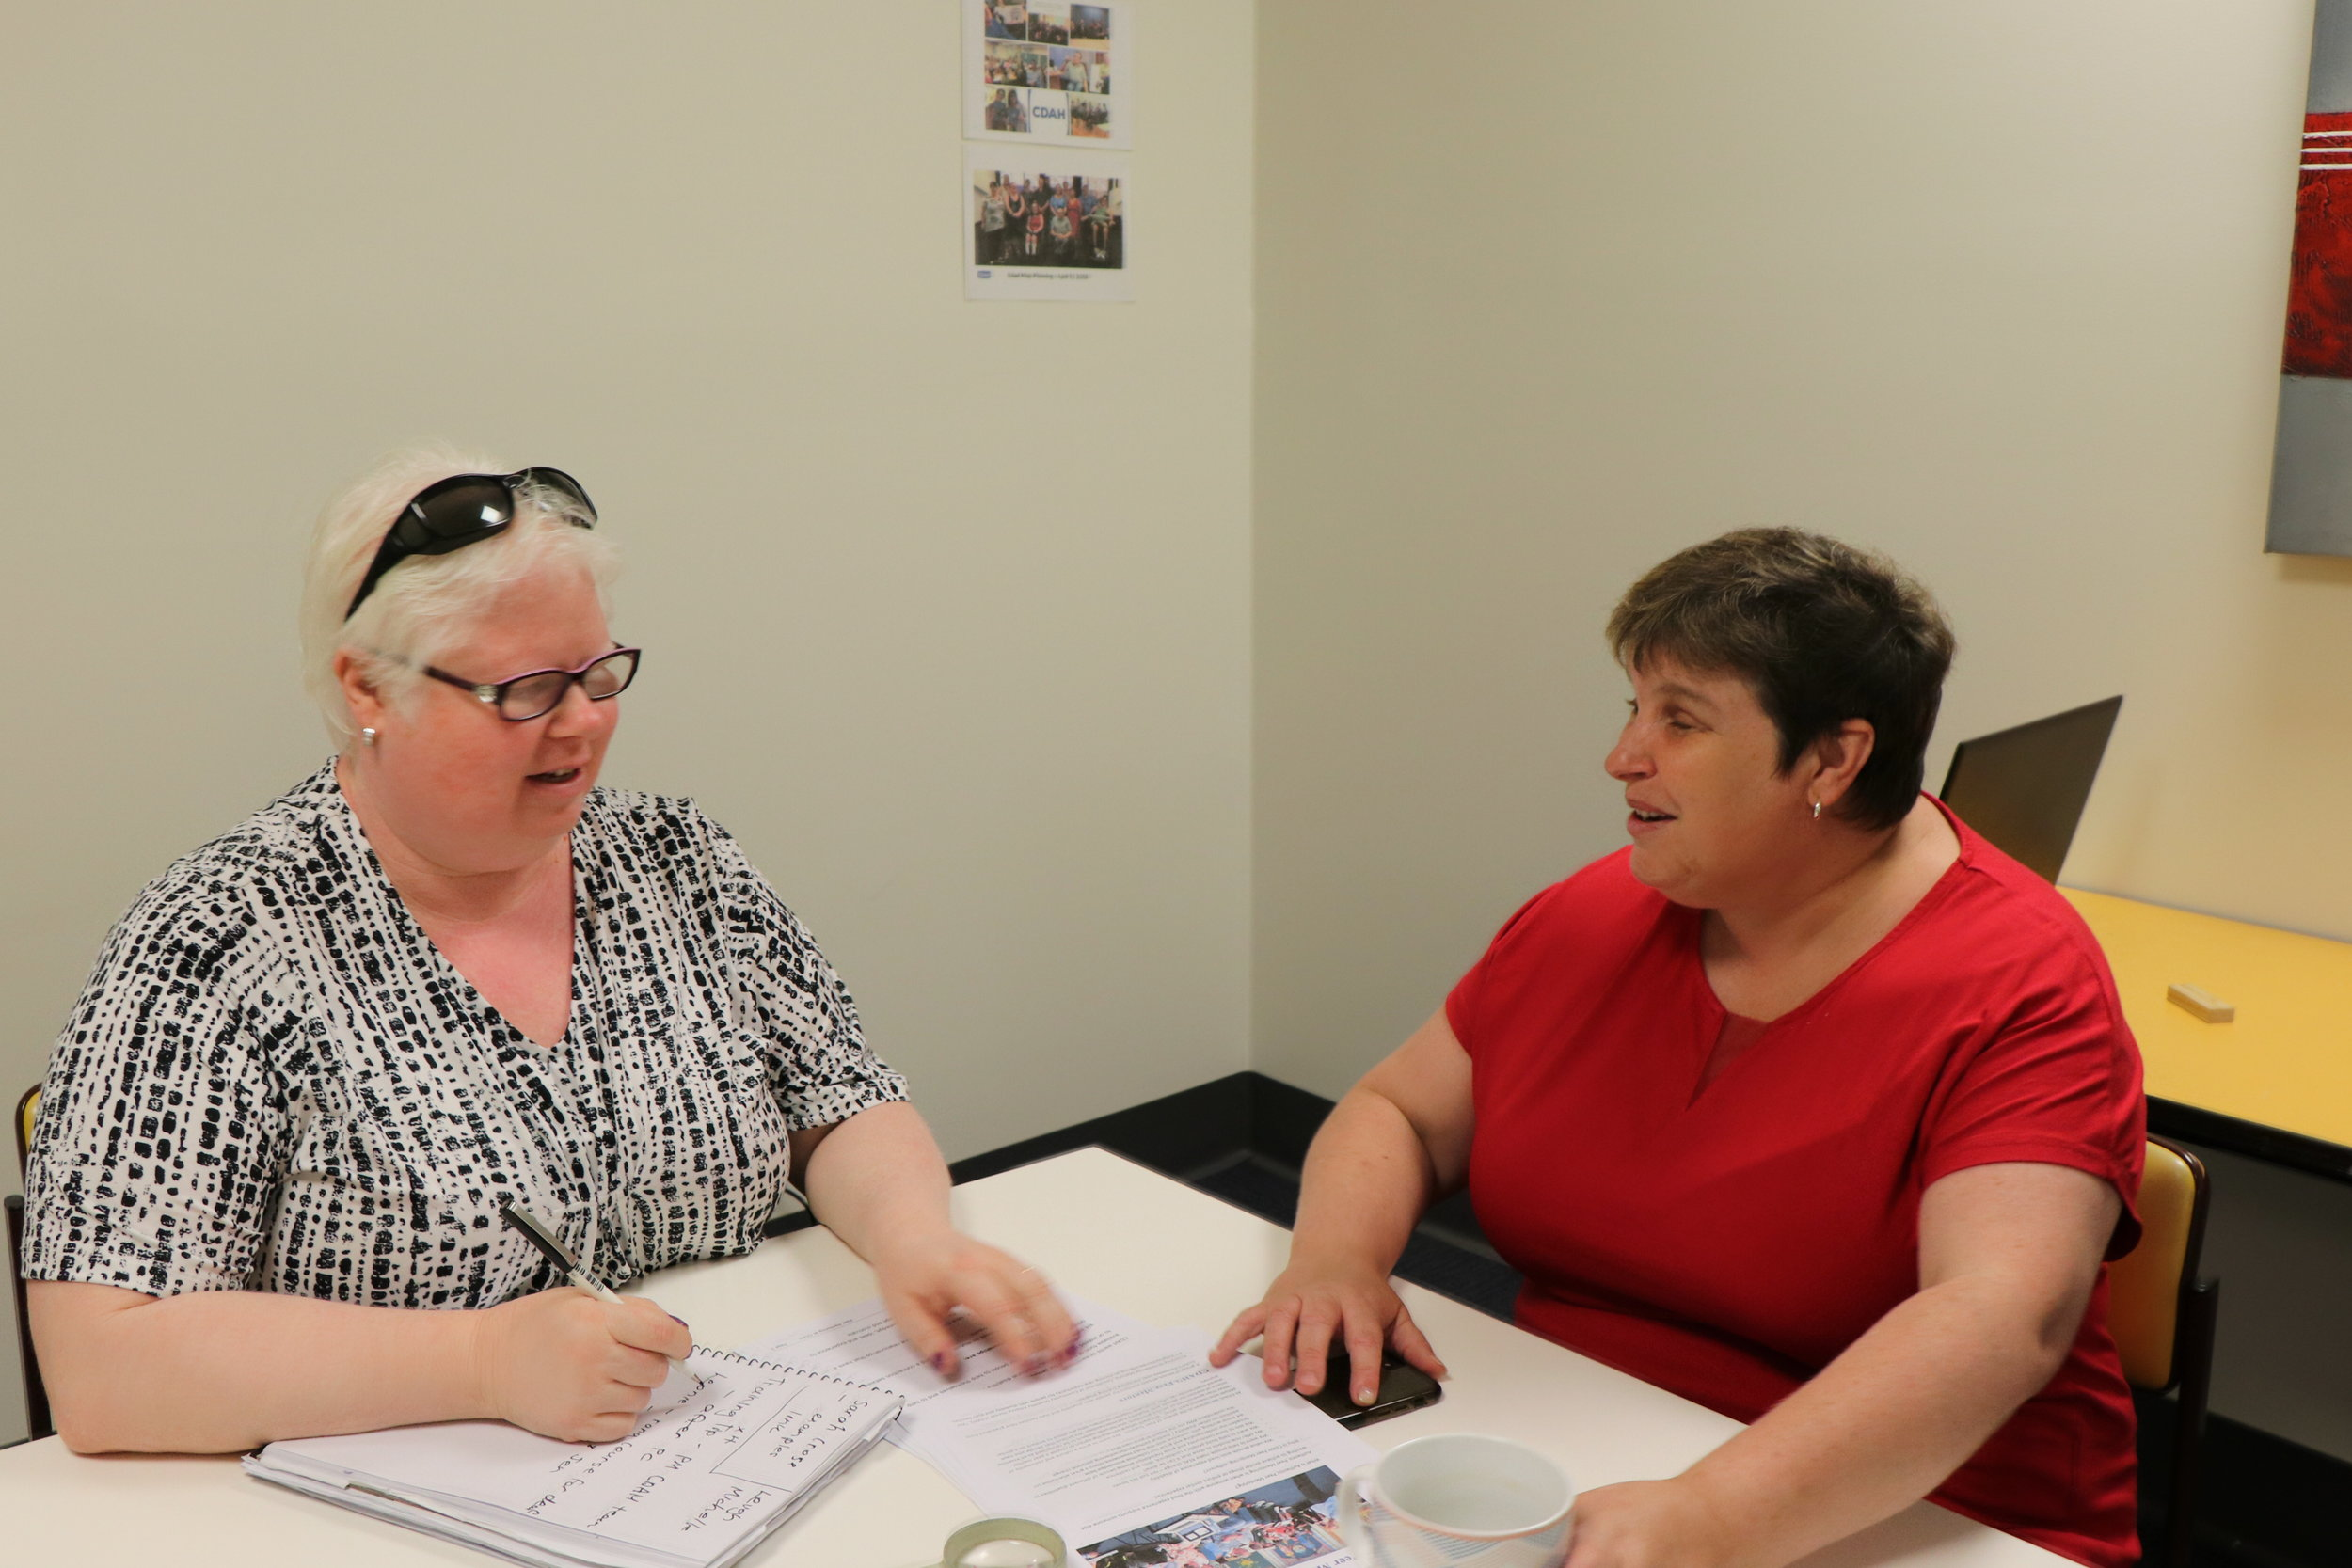 Image description: Photo of Ralene Bock and her colleague Cath Mahony sitting at a table working.